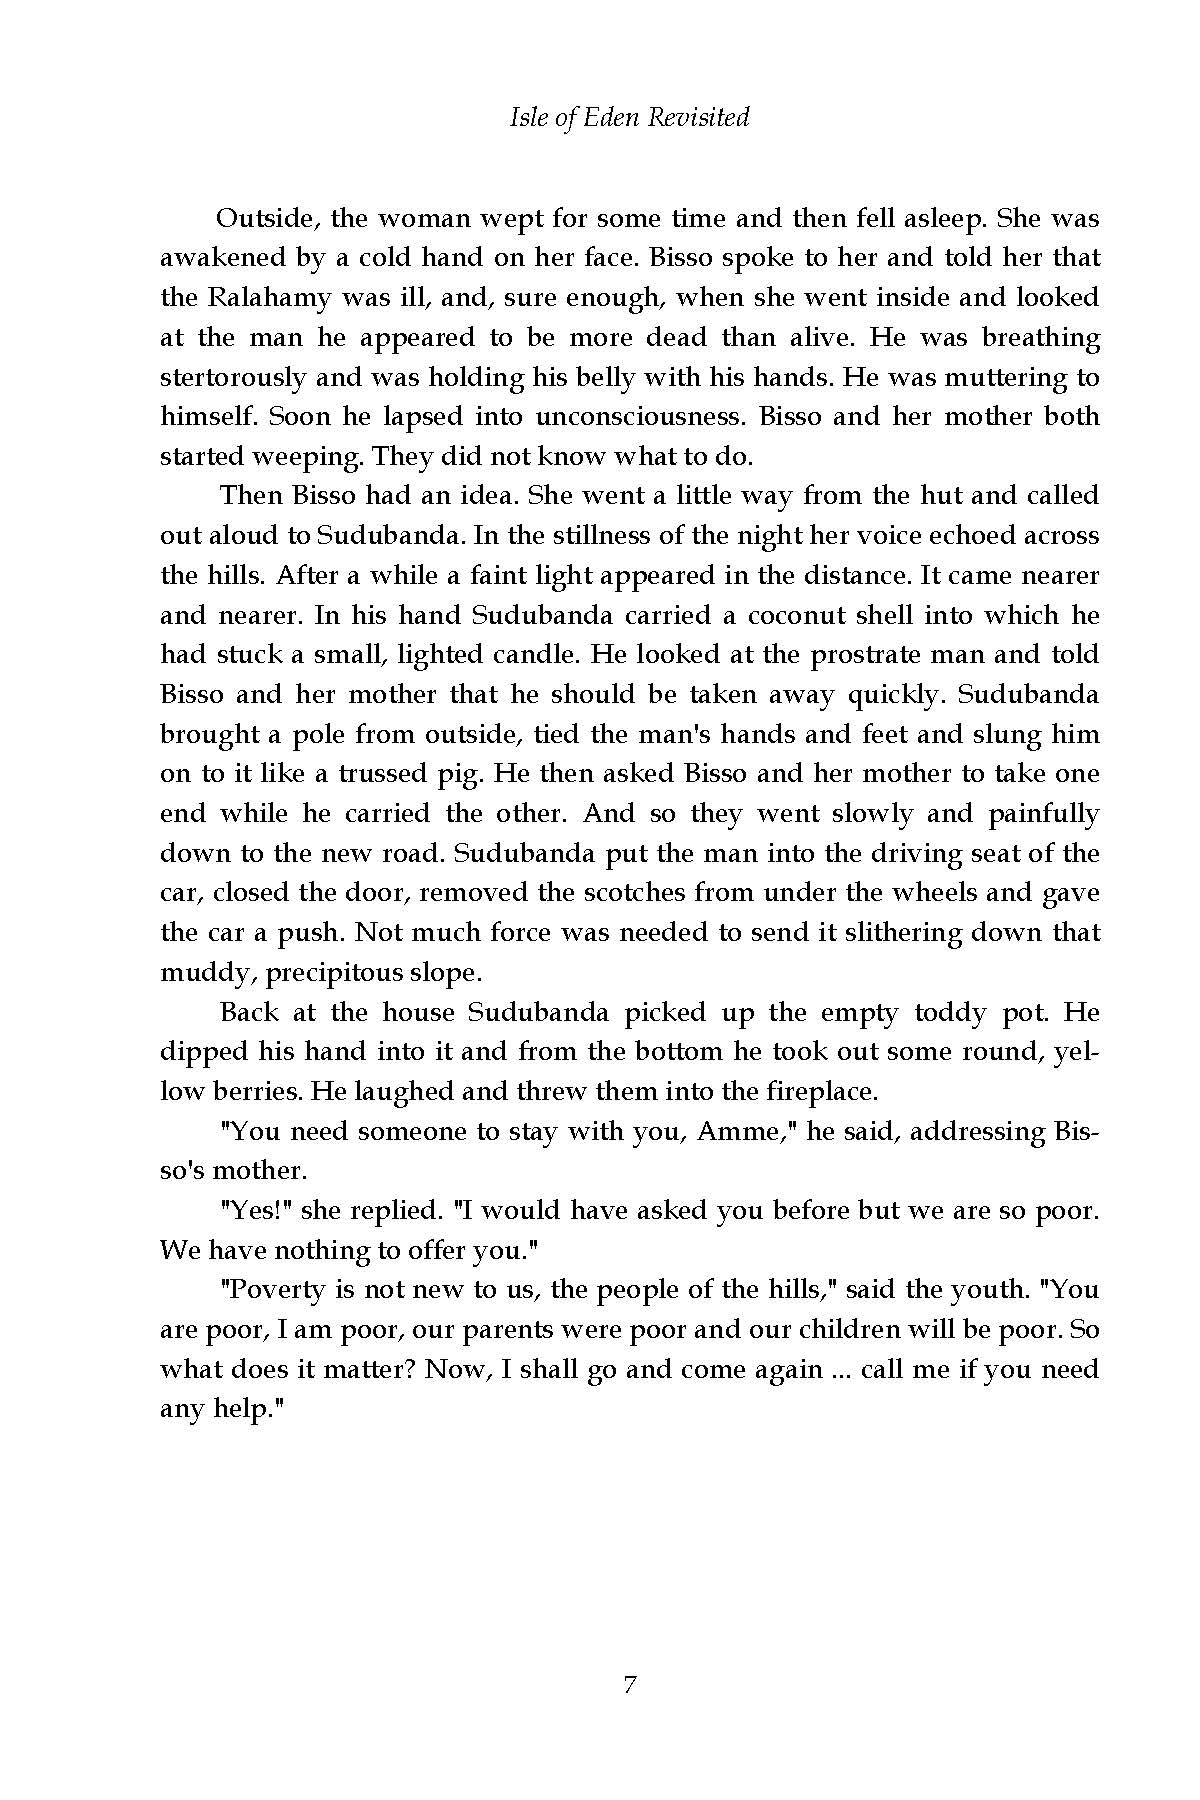 jgre050217 (final text)_Page_09.jpg